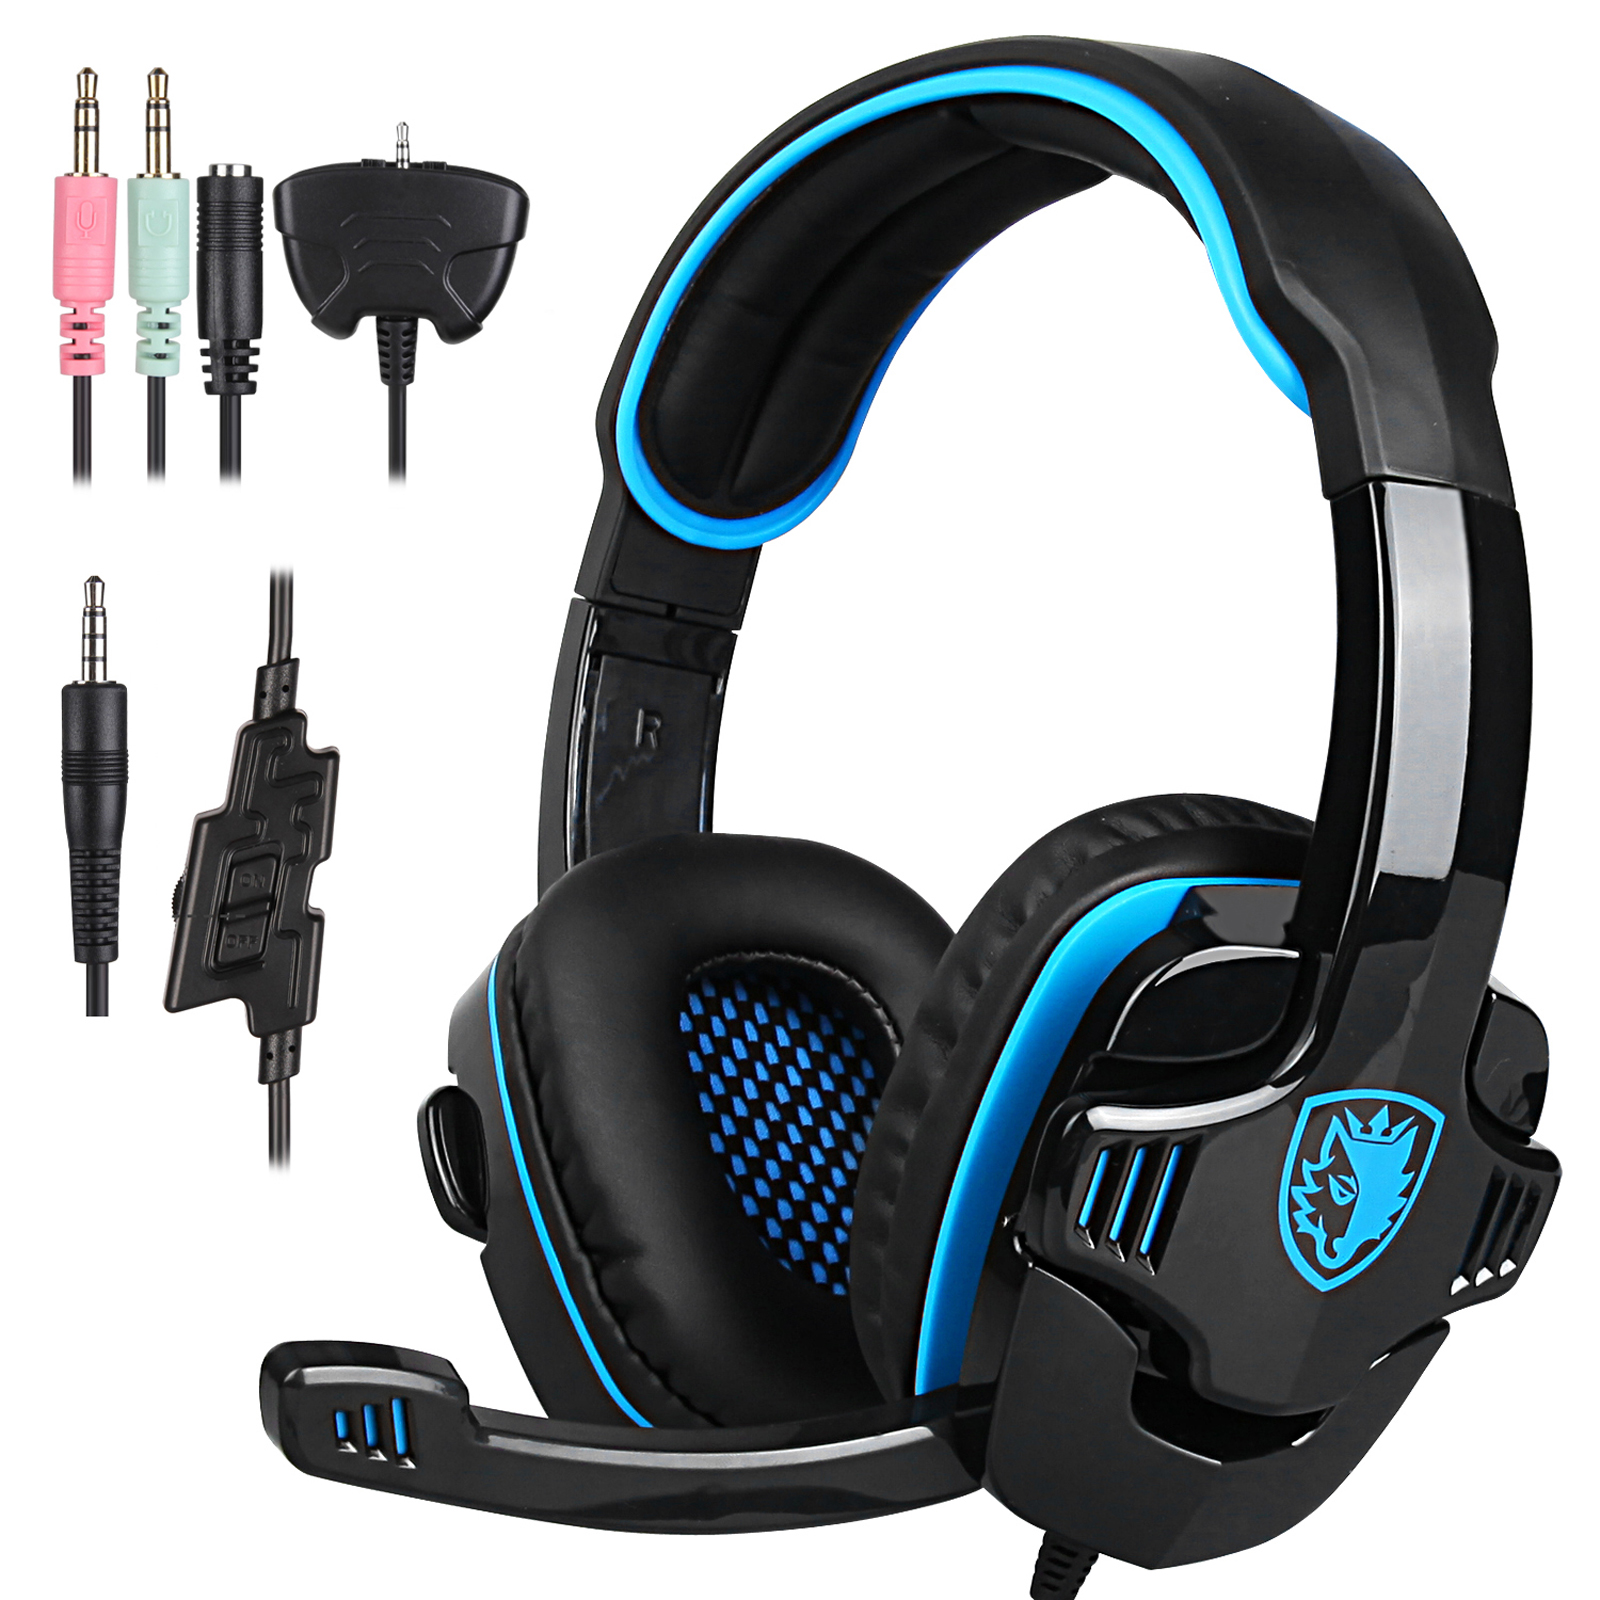 sades sa 708gt stereo wired gaming headsets headphones w mic for ps4 xbox ebay. Black Bedroom Furniture Sets. Home Design Ideas